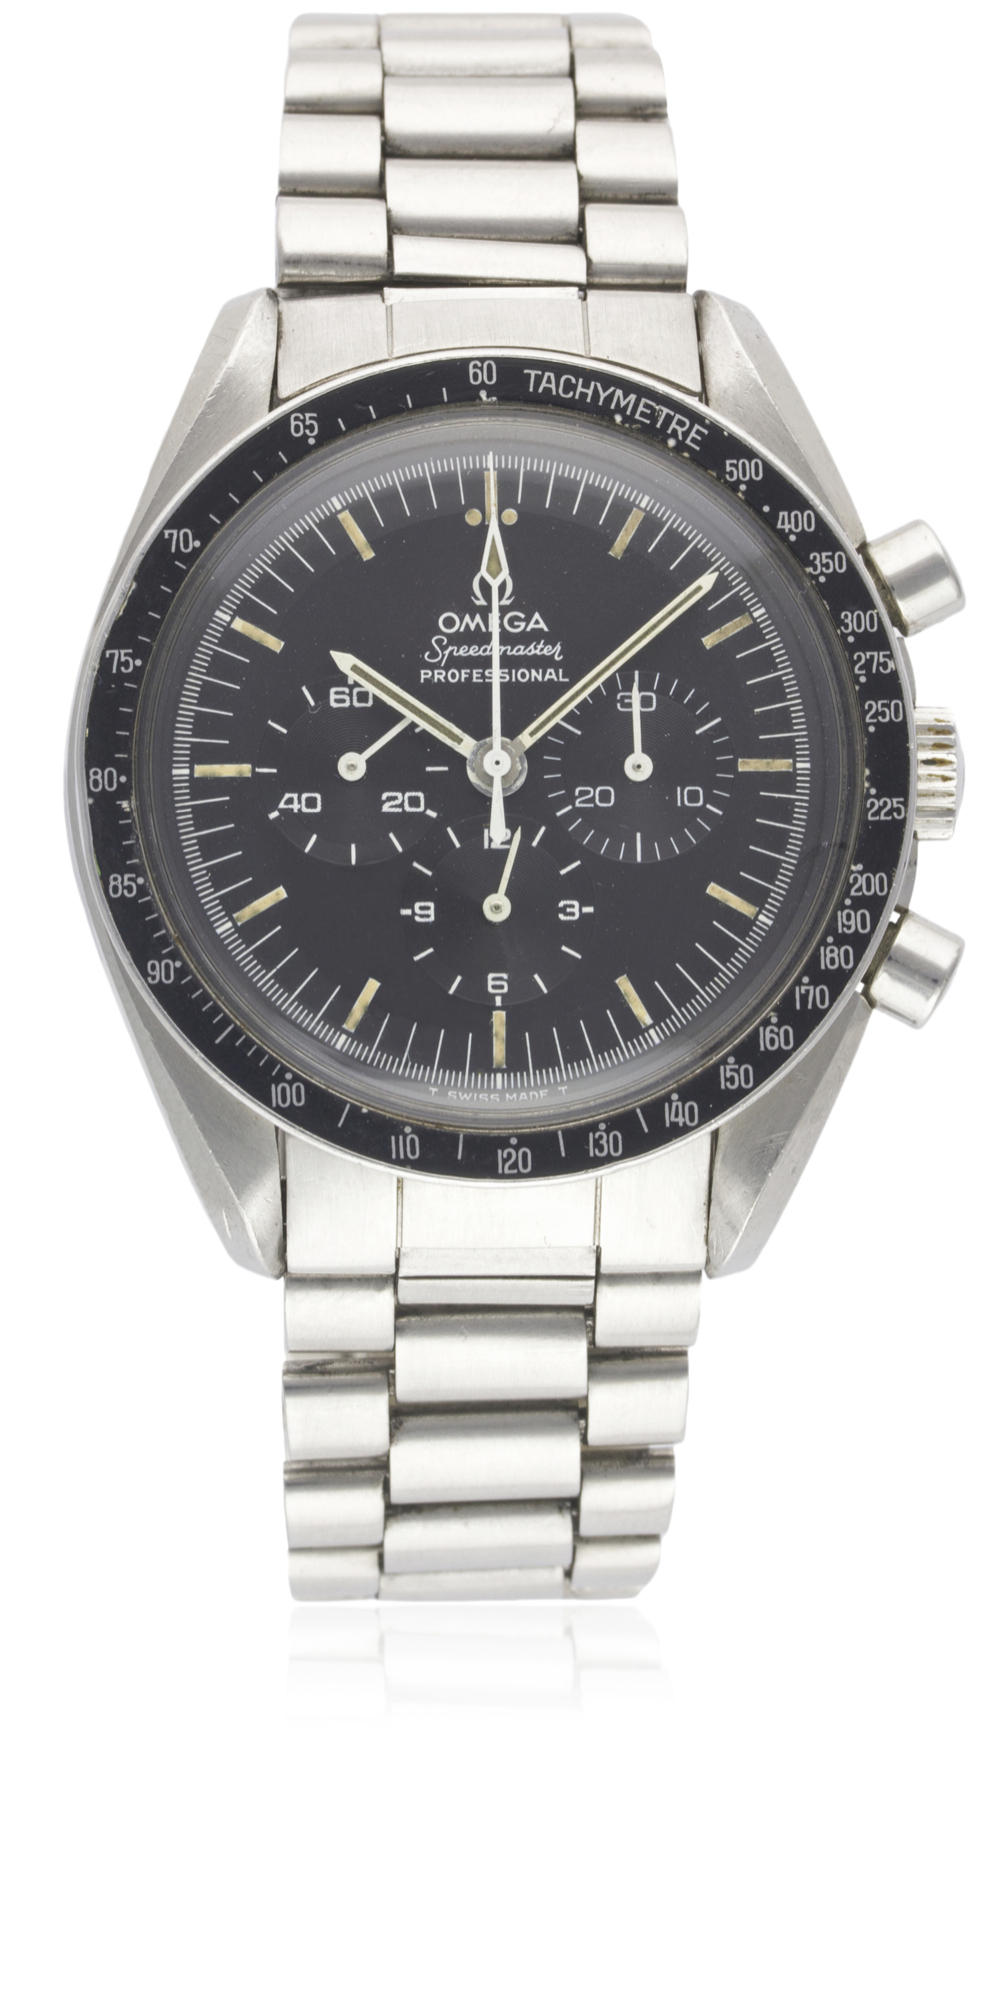 Lot 184 - A GENTLEMAN'S STAINLESS STEEL OMEGA SPEEDMASTER PROFESSIONAL CHRONOGRAPH BRACELET WATCH CIRCA